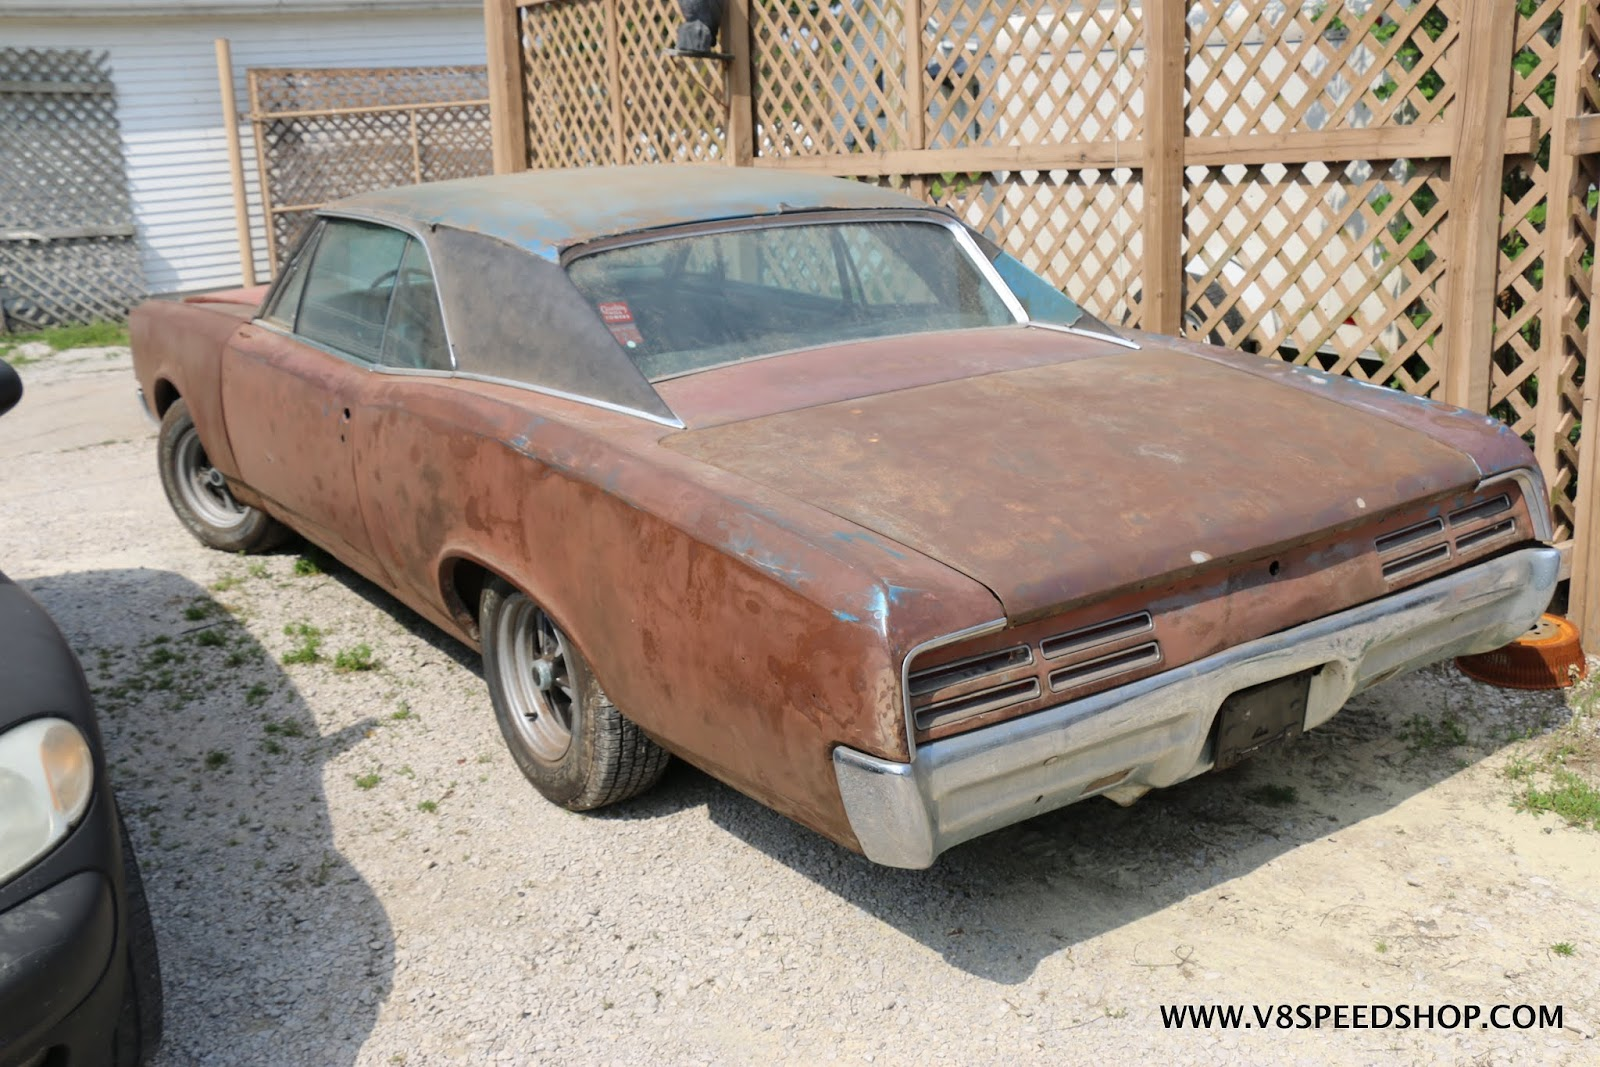 1967 Pontiac GTO Restoration and Performance Upgrades at V8 Speed